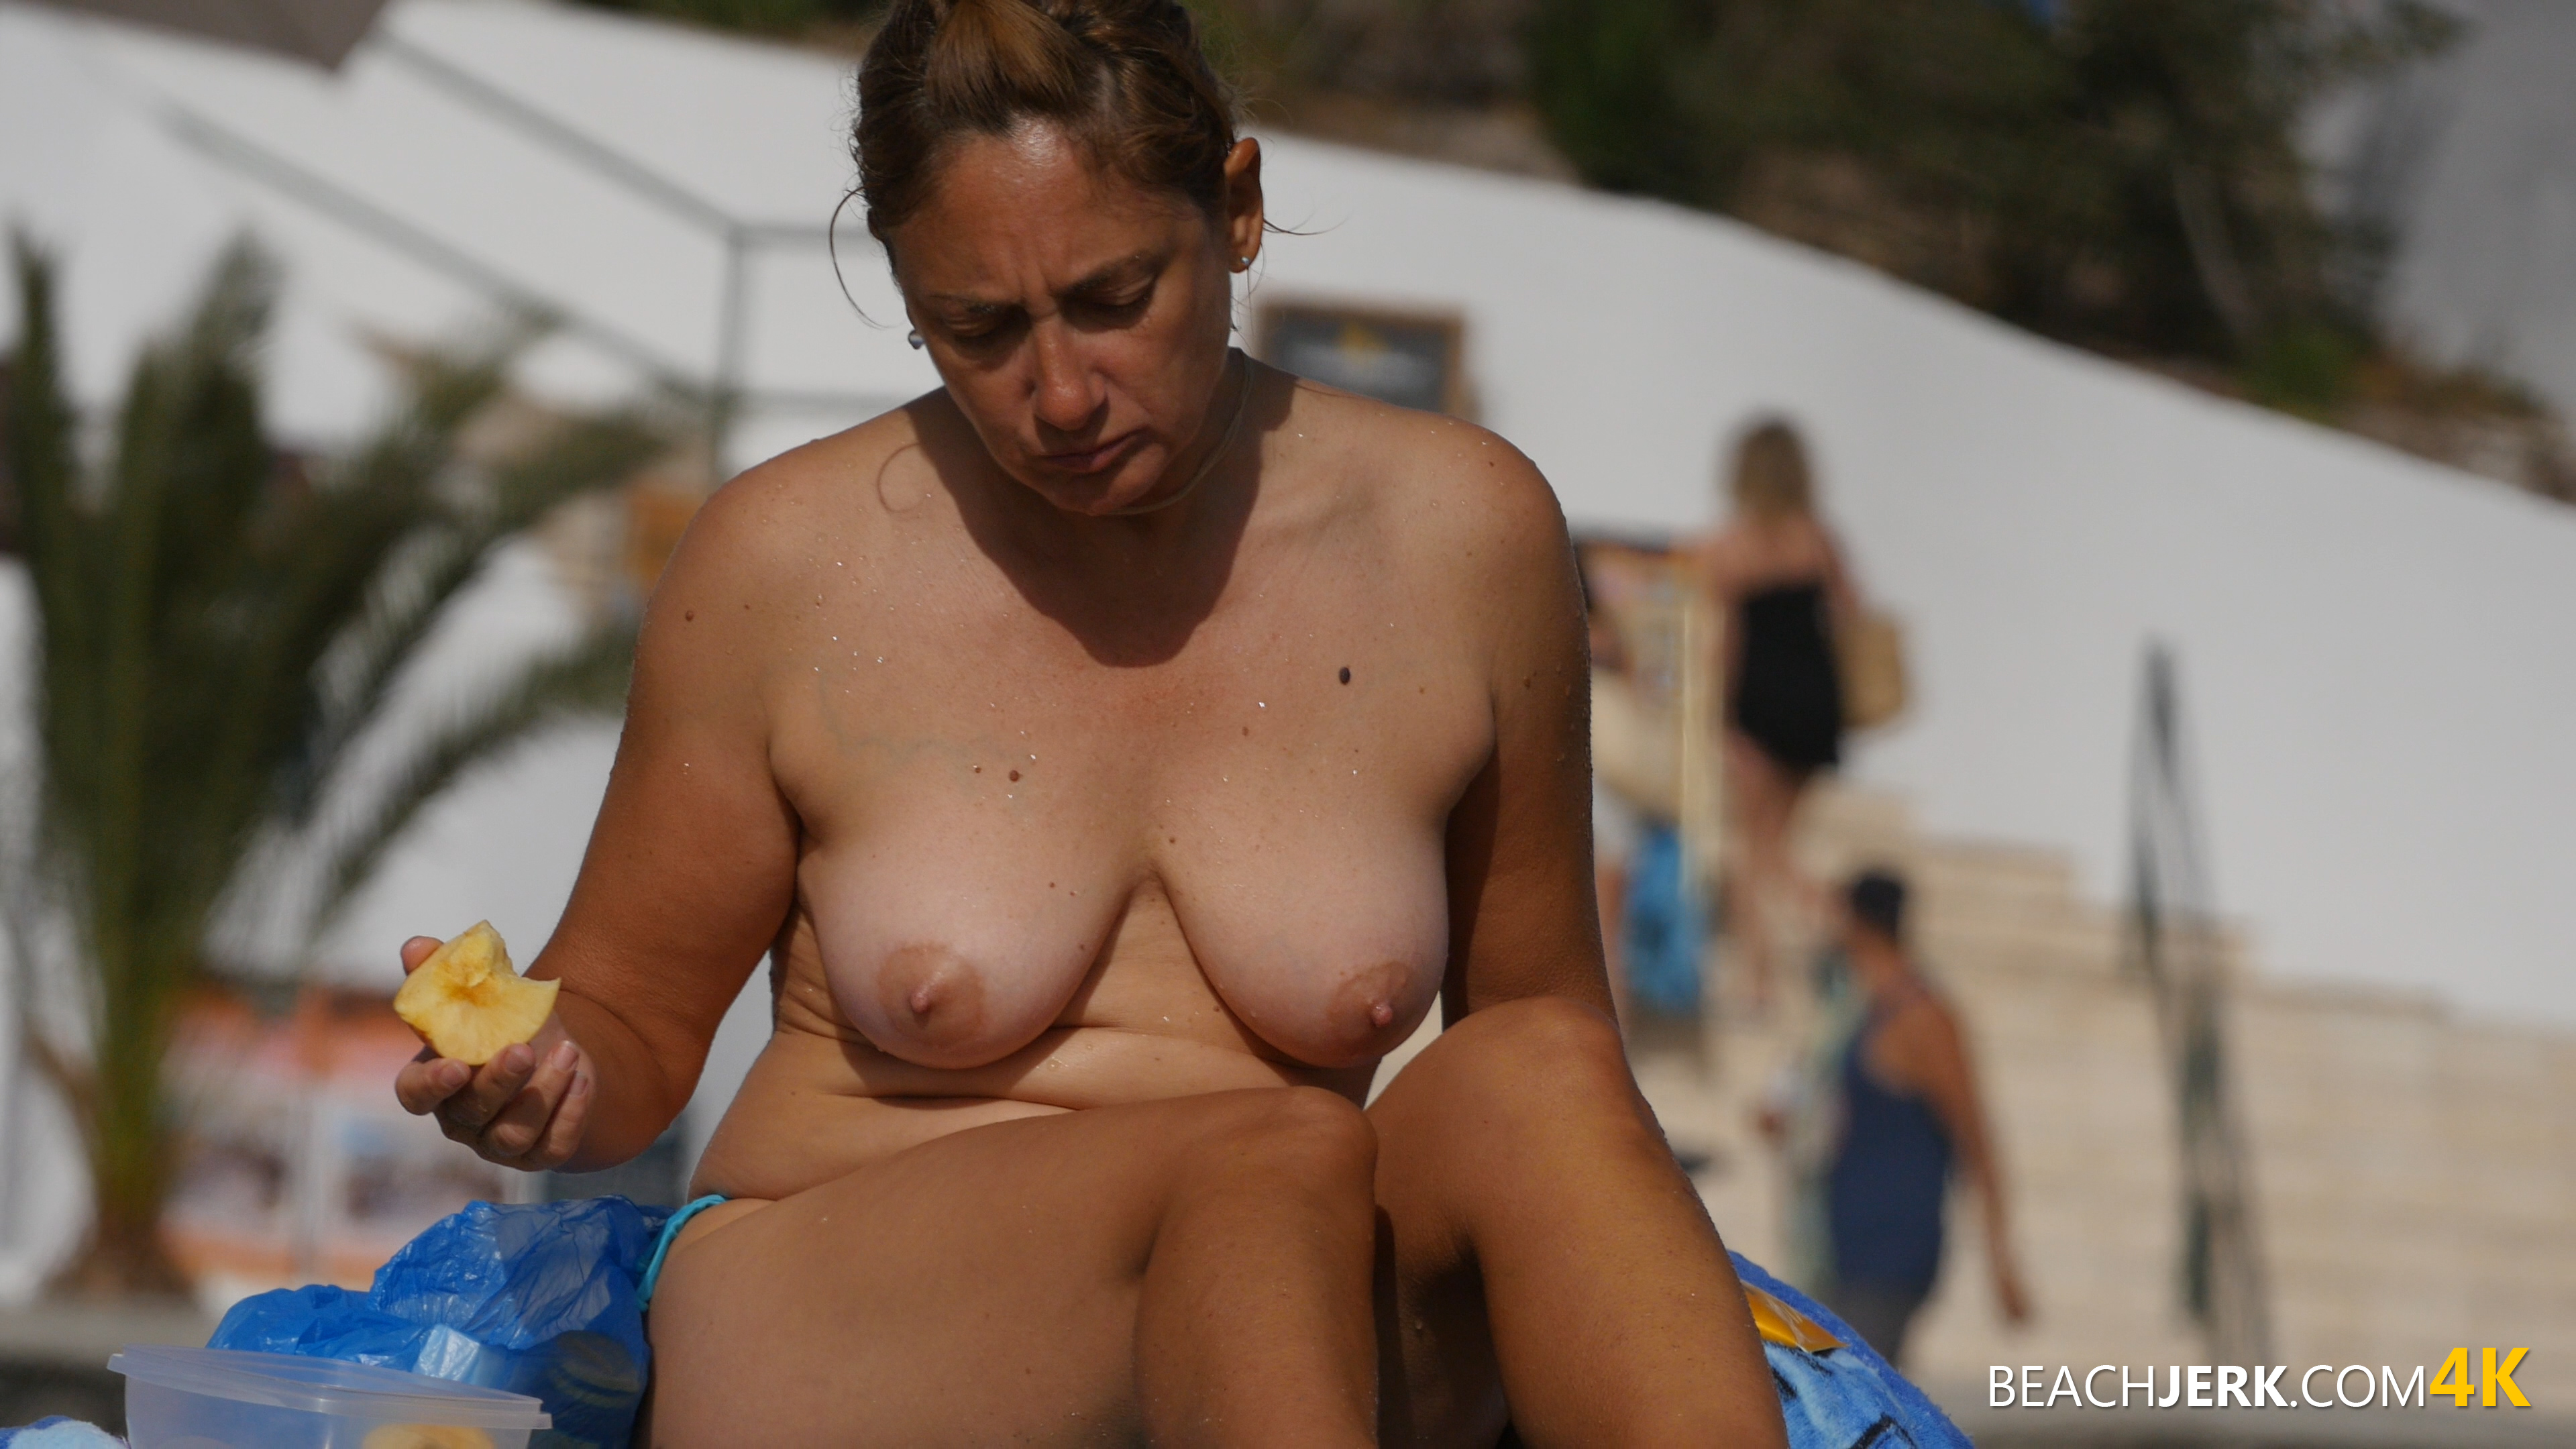 Milf Beach Video